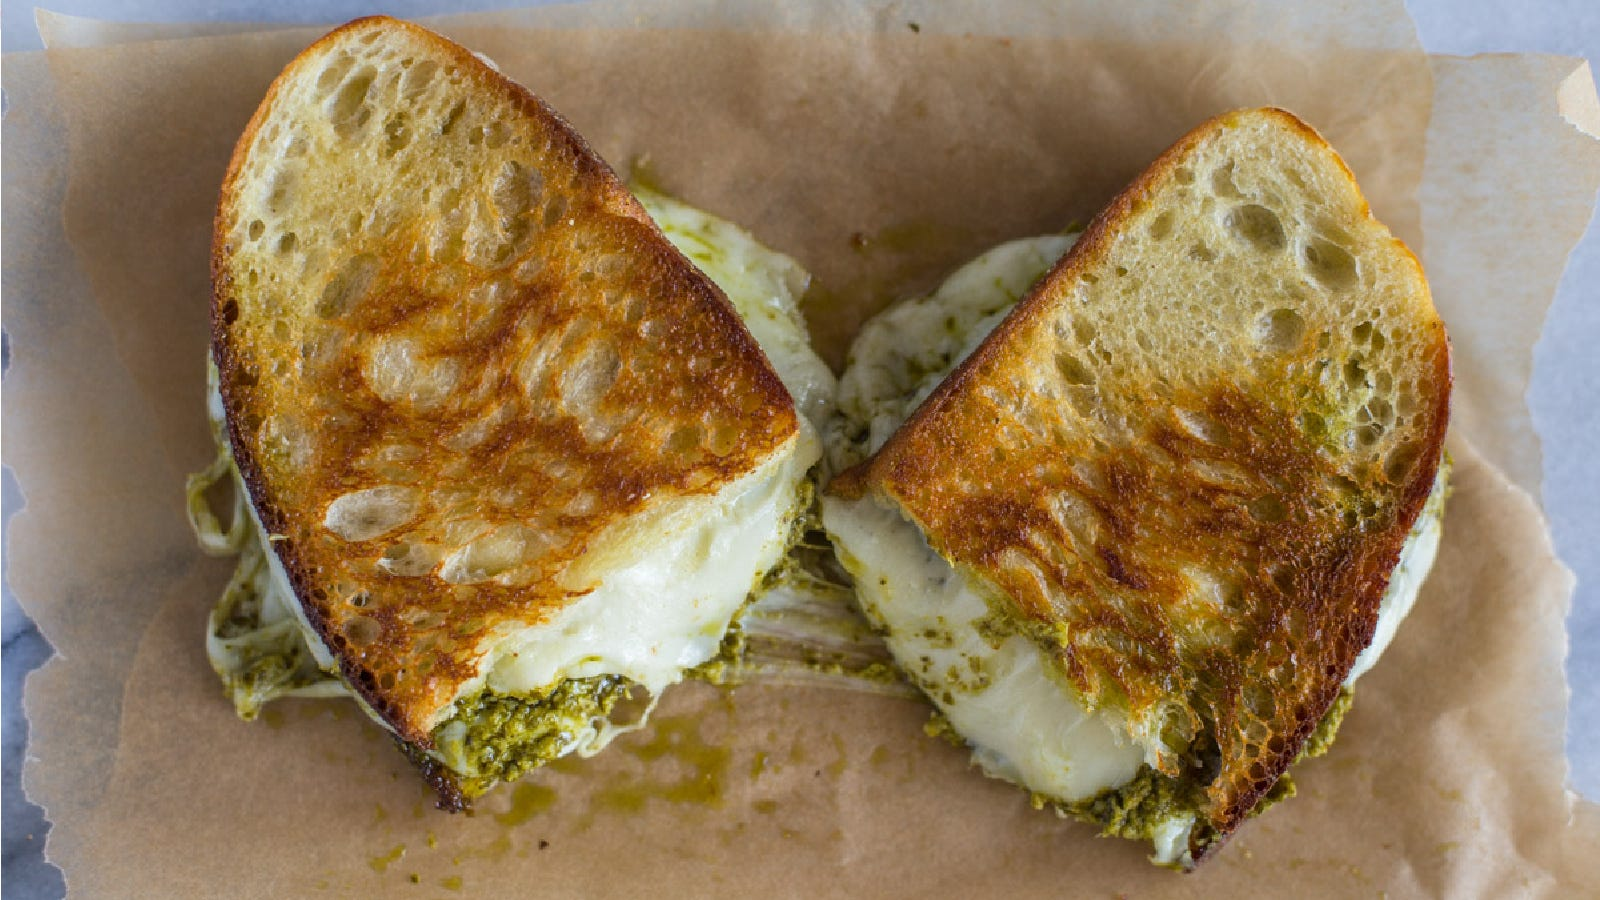 A pesto grilled cheese sandwich made with sourdough bread, sitting on a piece of parchment.